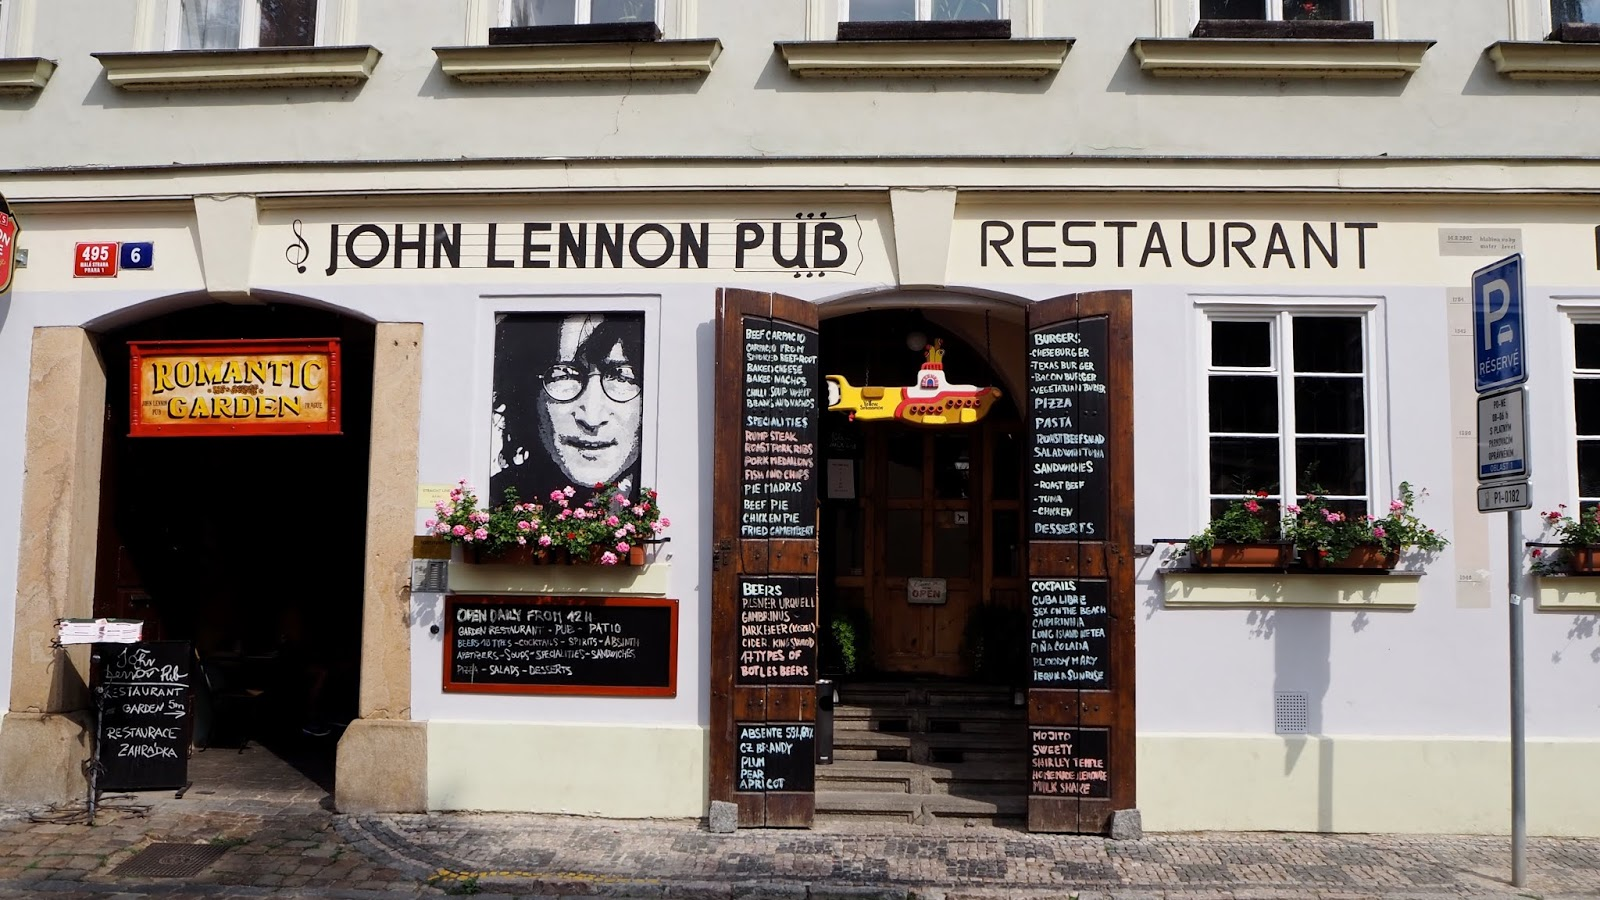 John Lennon Pub and Restaurant in Prague